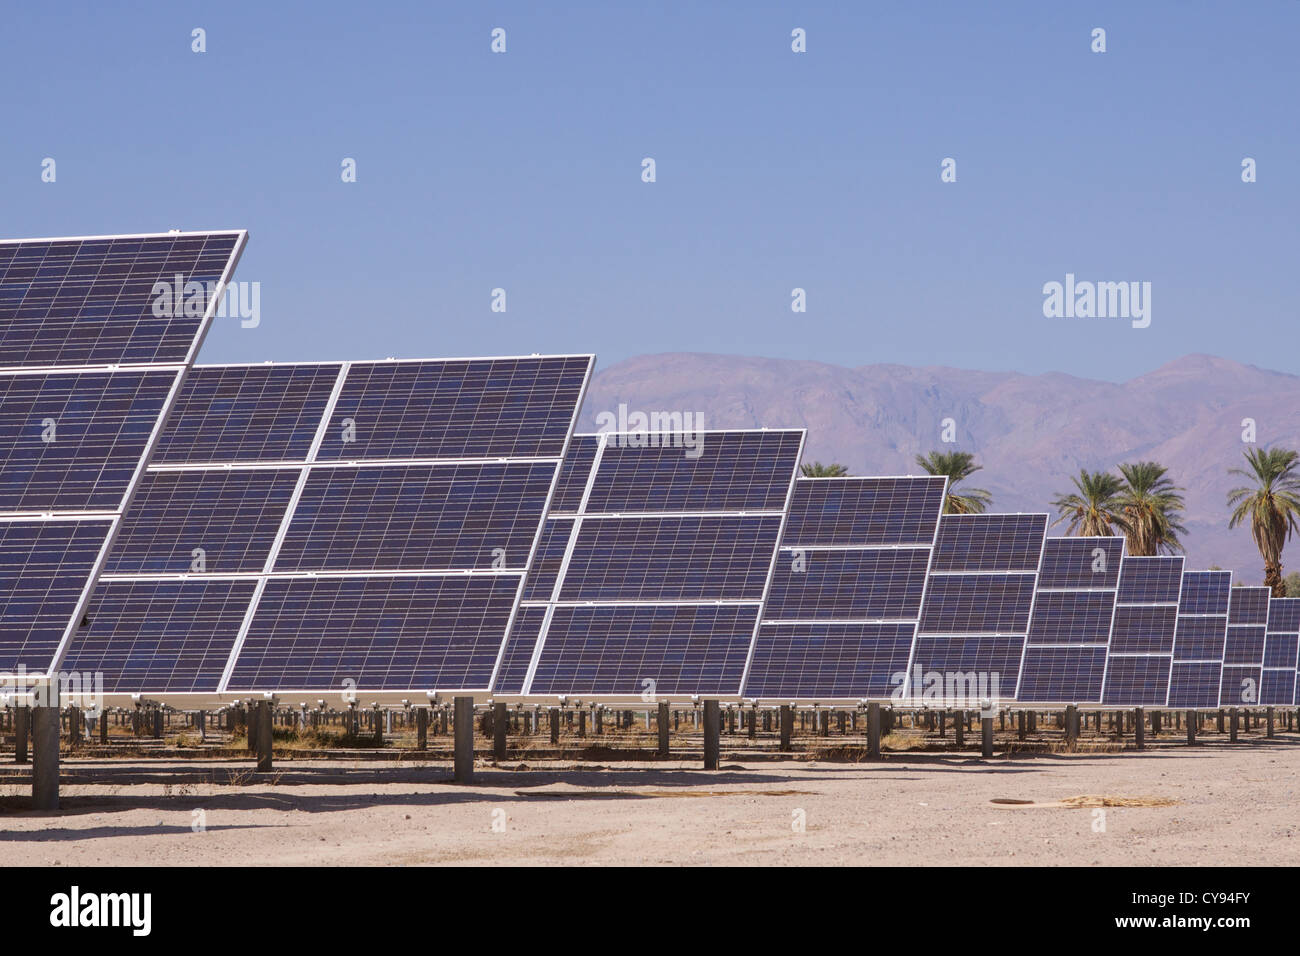 One of the largest solar photovoltaic (PV) energy systems in the United States covering five acres of Death Valley - Stock Image